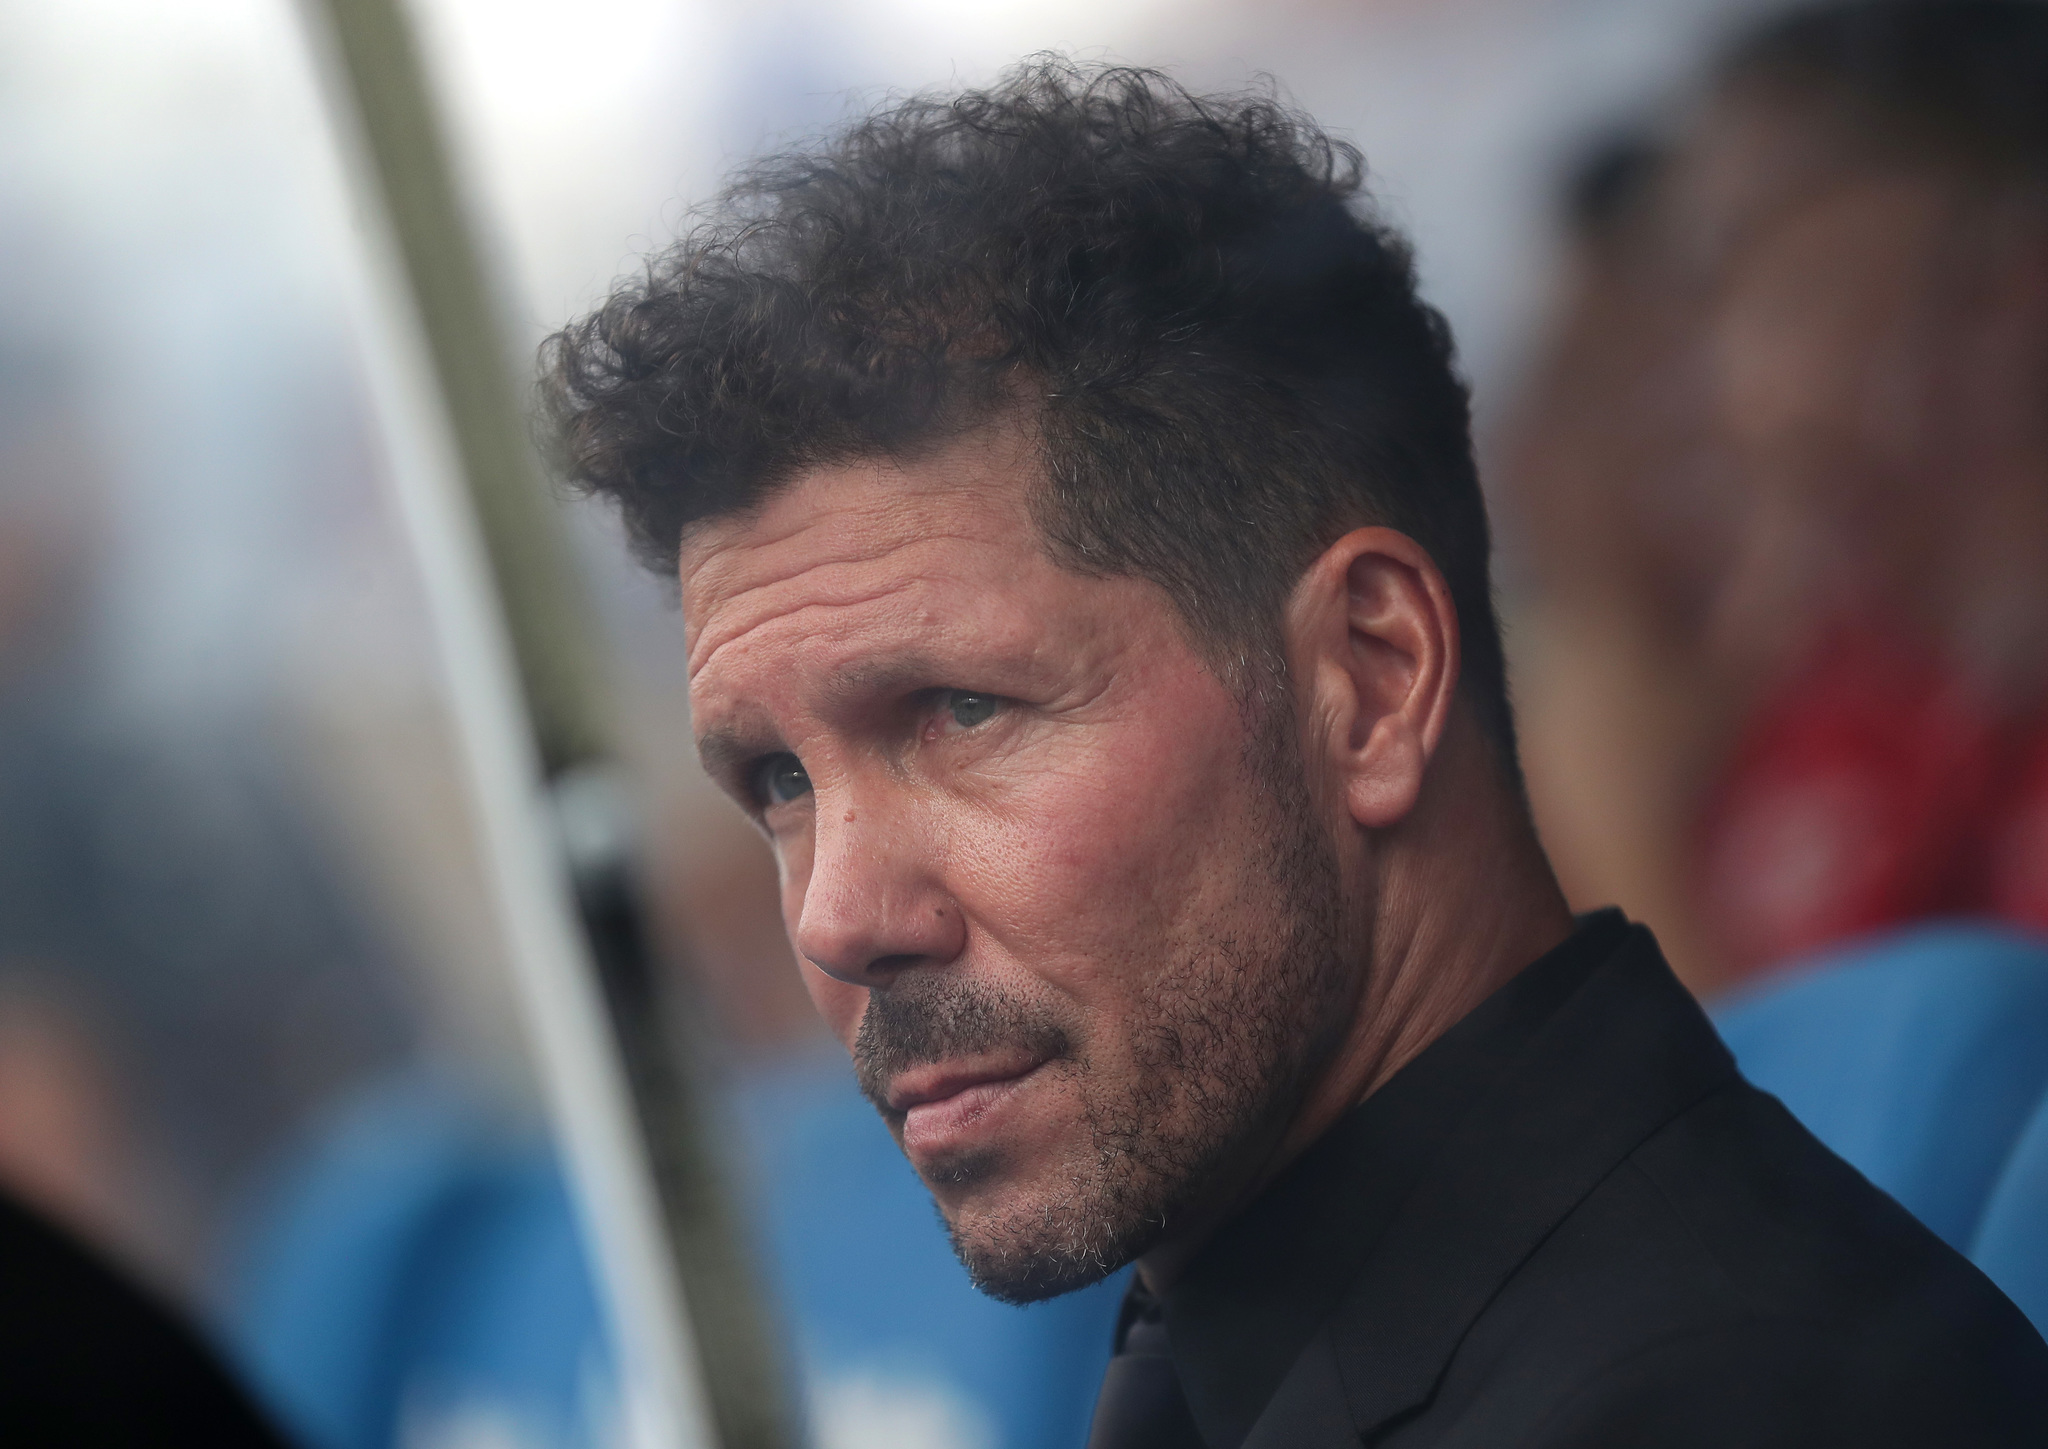 LEGANES, SPAIN - AUGUST 25: Diego <HIT>Simeone</HIT>, Head coach of Atletico de Madrid looks on prior to the Liga match between CD Leganes and Club Atletico de Madrid at Estadio Municipal de Butarque on August 25, 2019 in Leganes, Spain. (Photo by Gonzalo Arroyo Moreno/Getty Images)